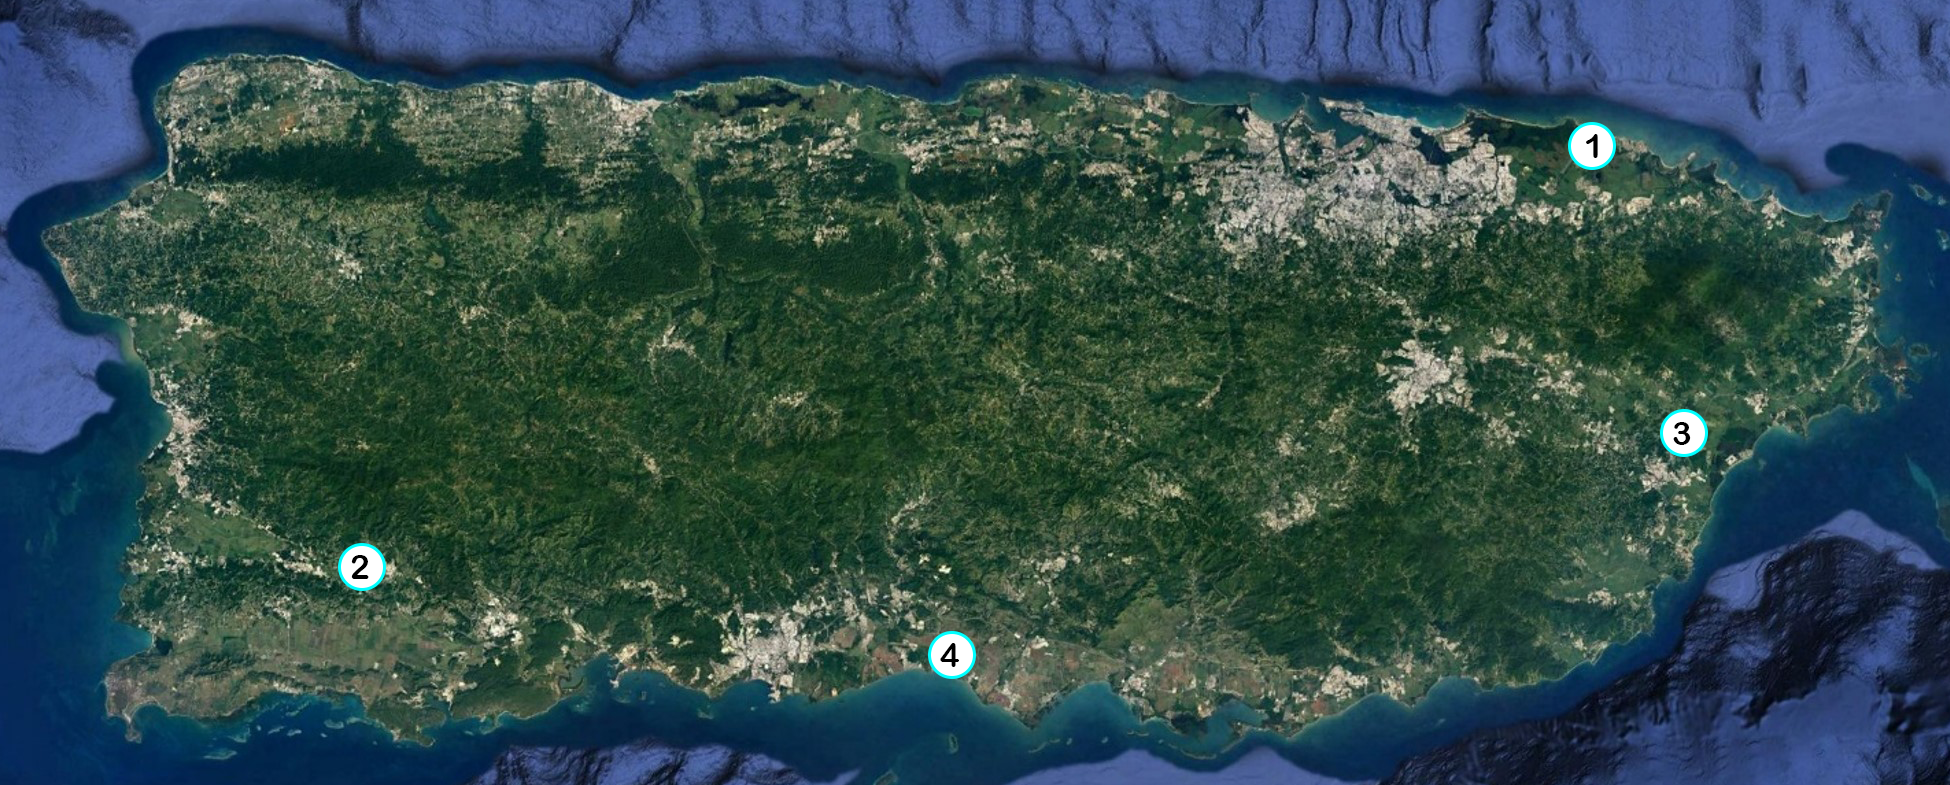 Map of Puerto Rico with numbered location of projects